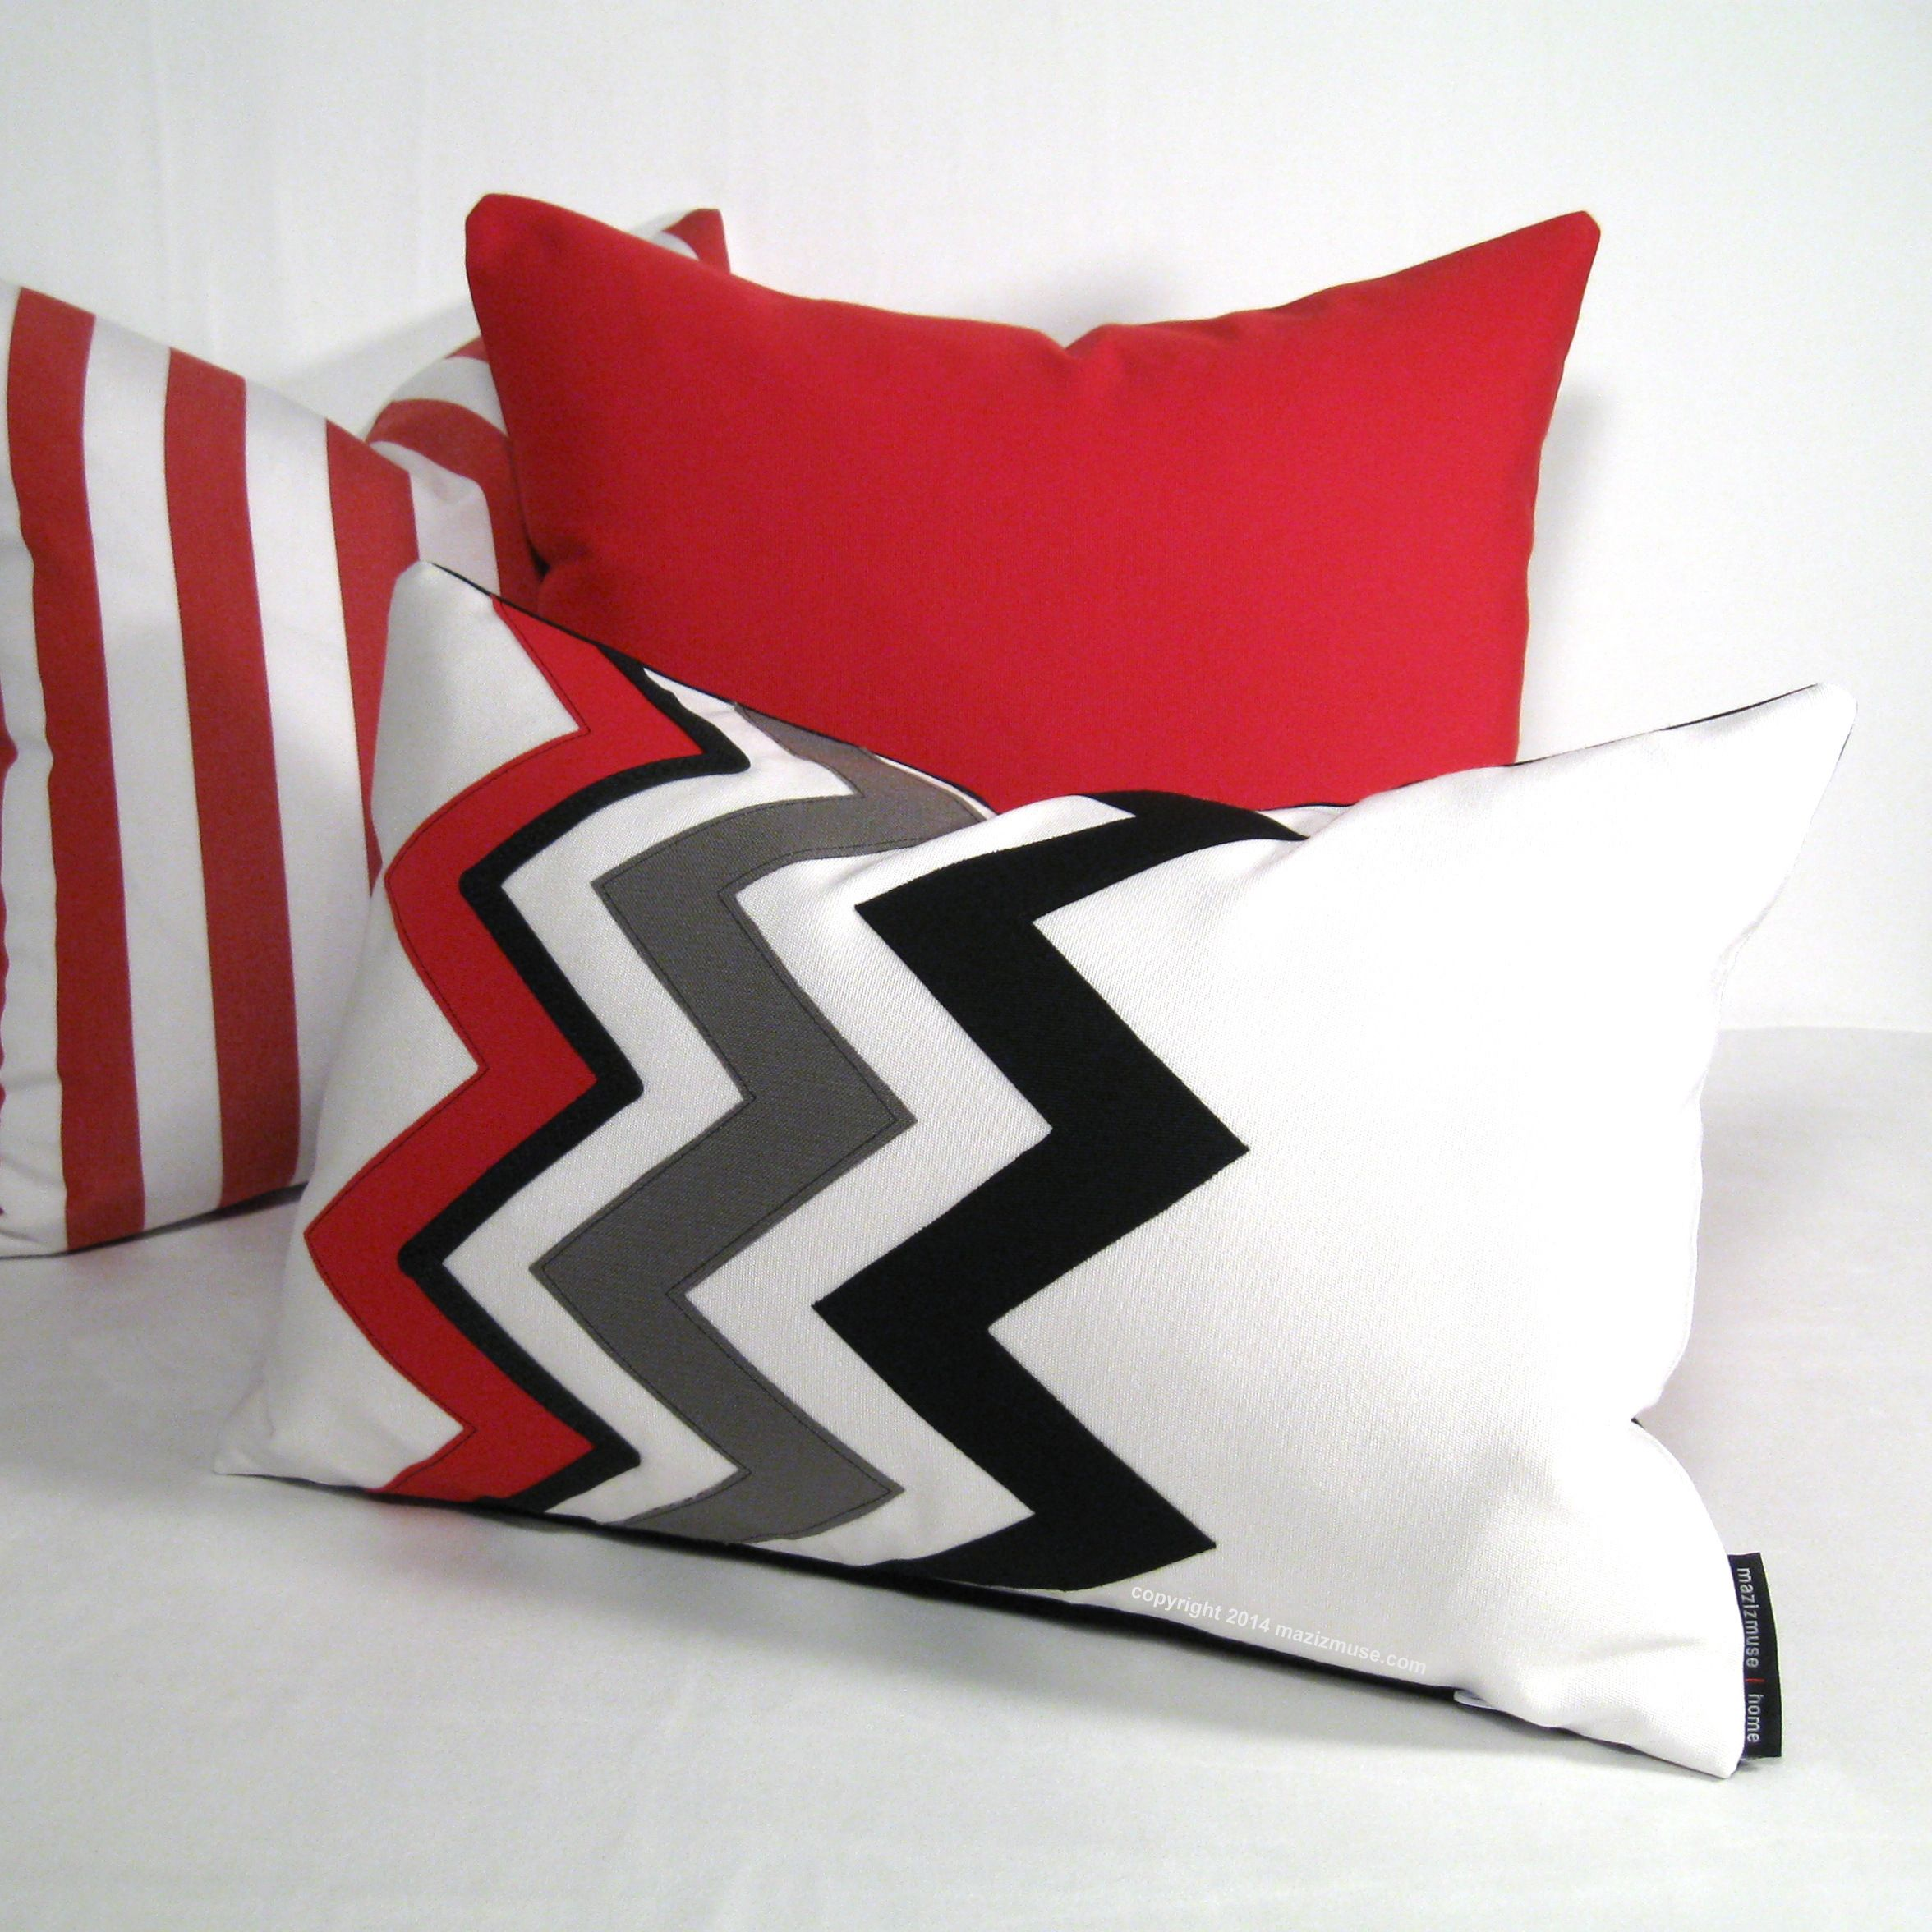 Colorful Indoor Outdoor Pillows With Poppy Red. #PoppyRedPilows  #OutdoorPillows #ModernPillows #SambaRed